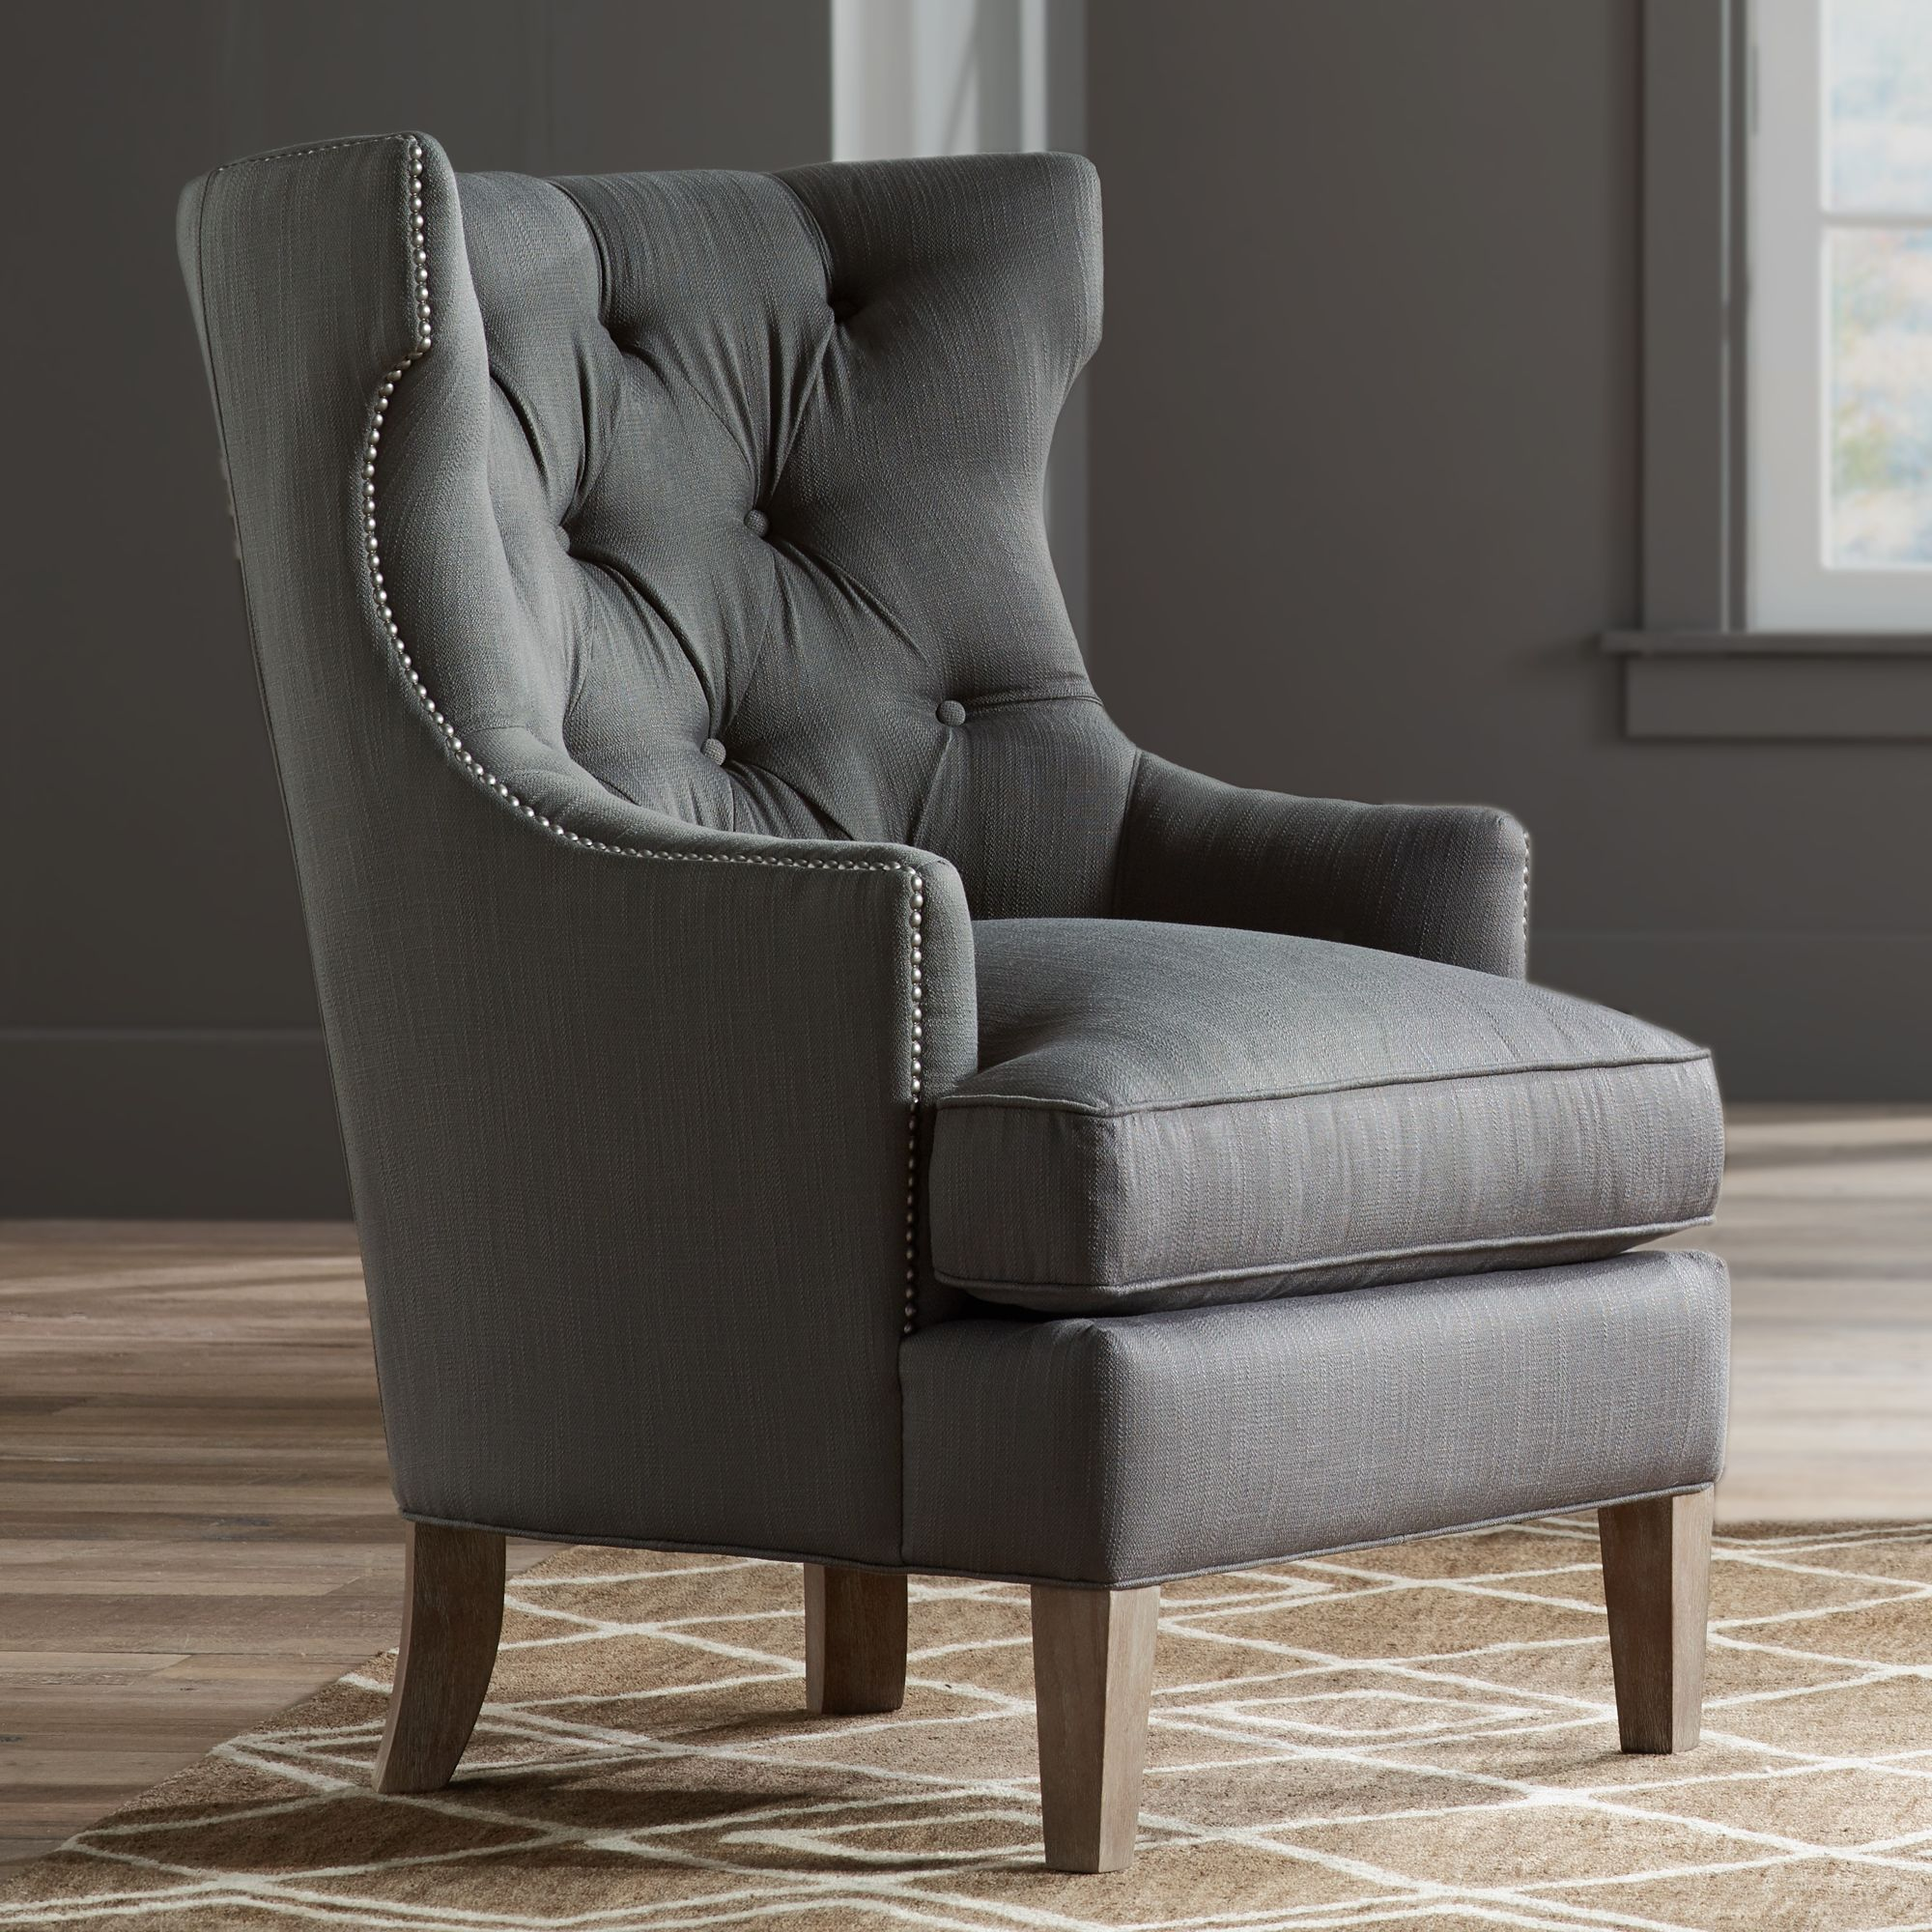 Beautiful High Back Accent Chairs Concept